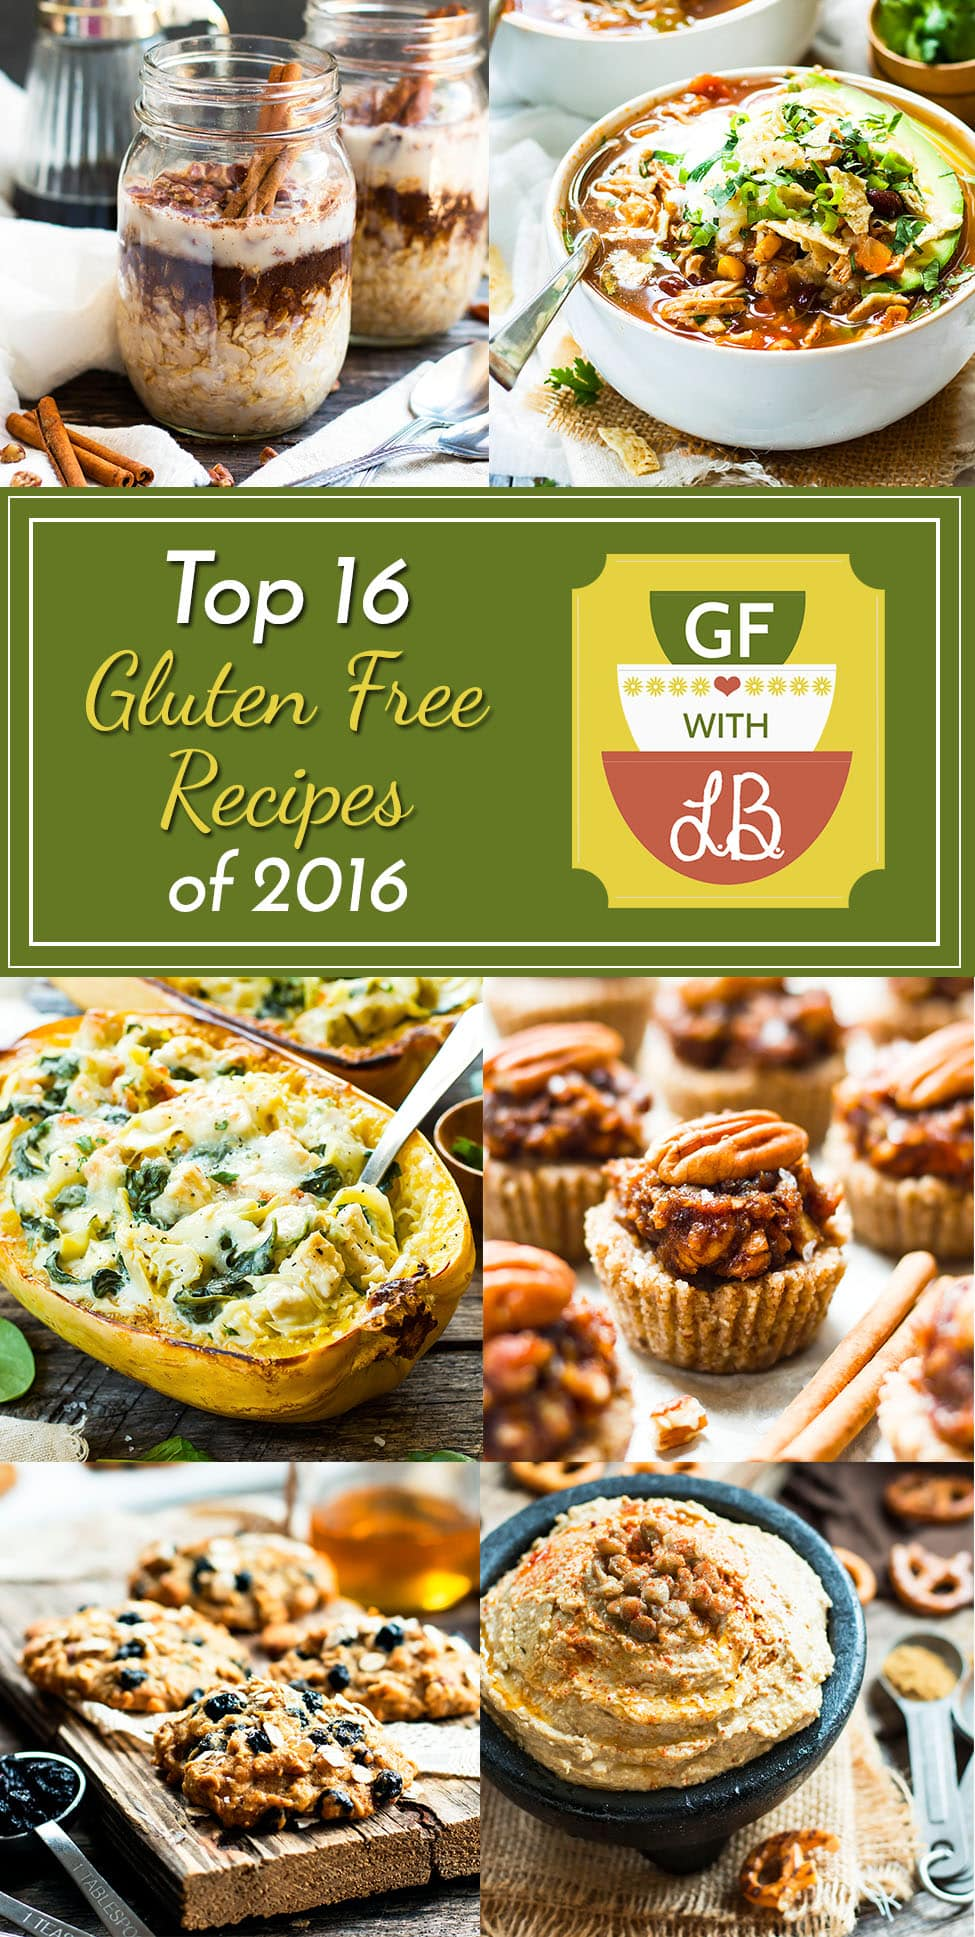 Top 16 Gluten Free Recipes of 2016 | From stuffed spaghetti squash, to overnight oats, I have rounded up the fan favorites from Gluten Free with L.B. in 2016!